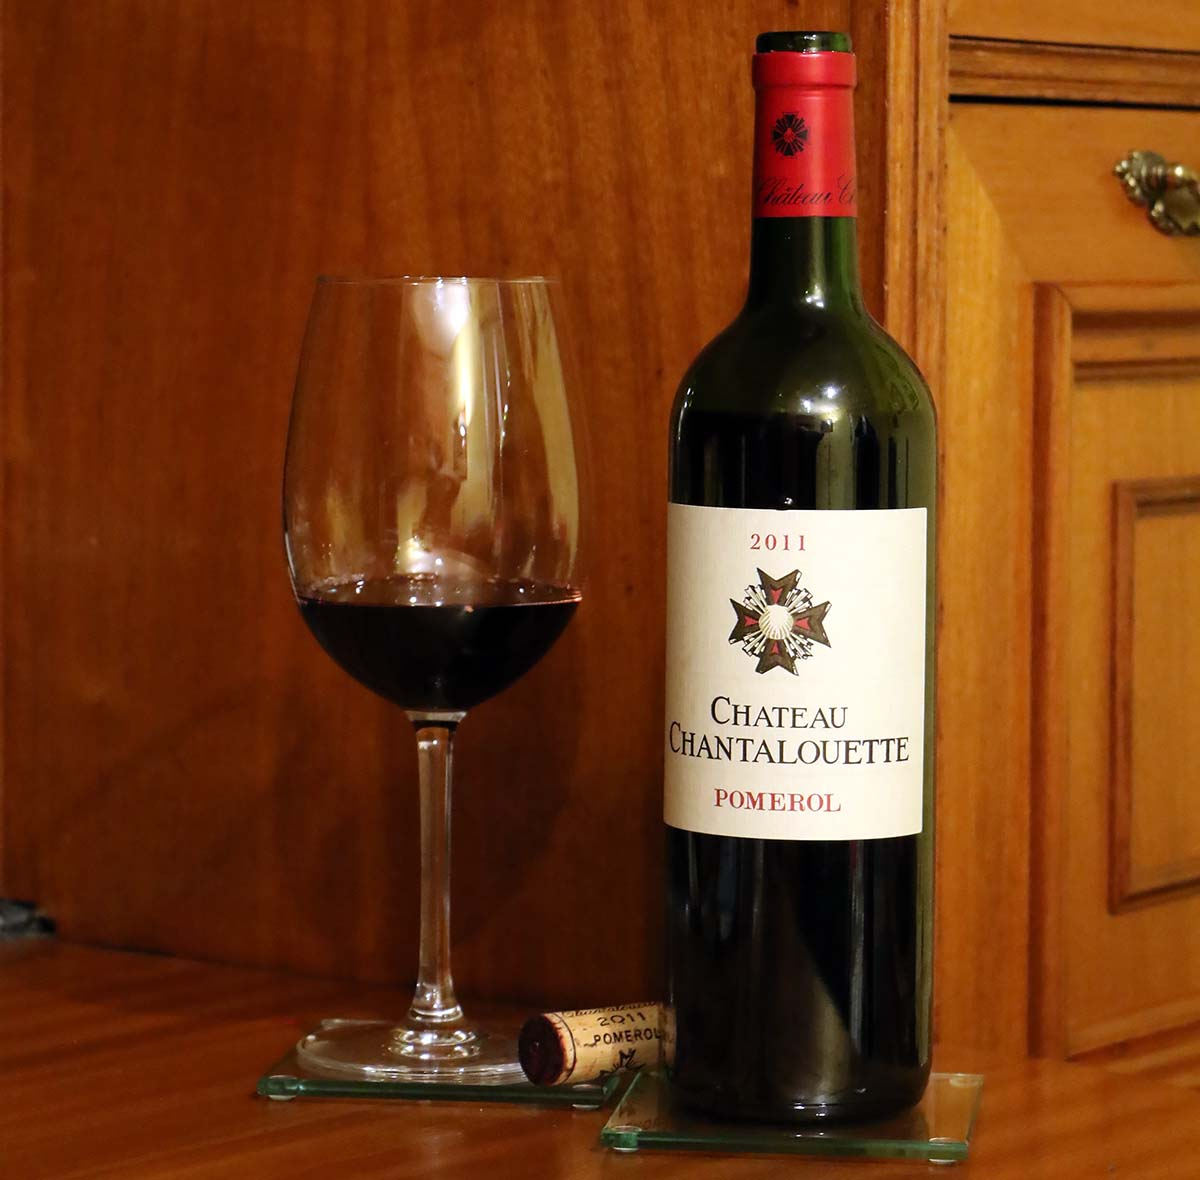 Chateau Chantalouette Pomerol 2011 Burdeos Bordeaux